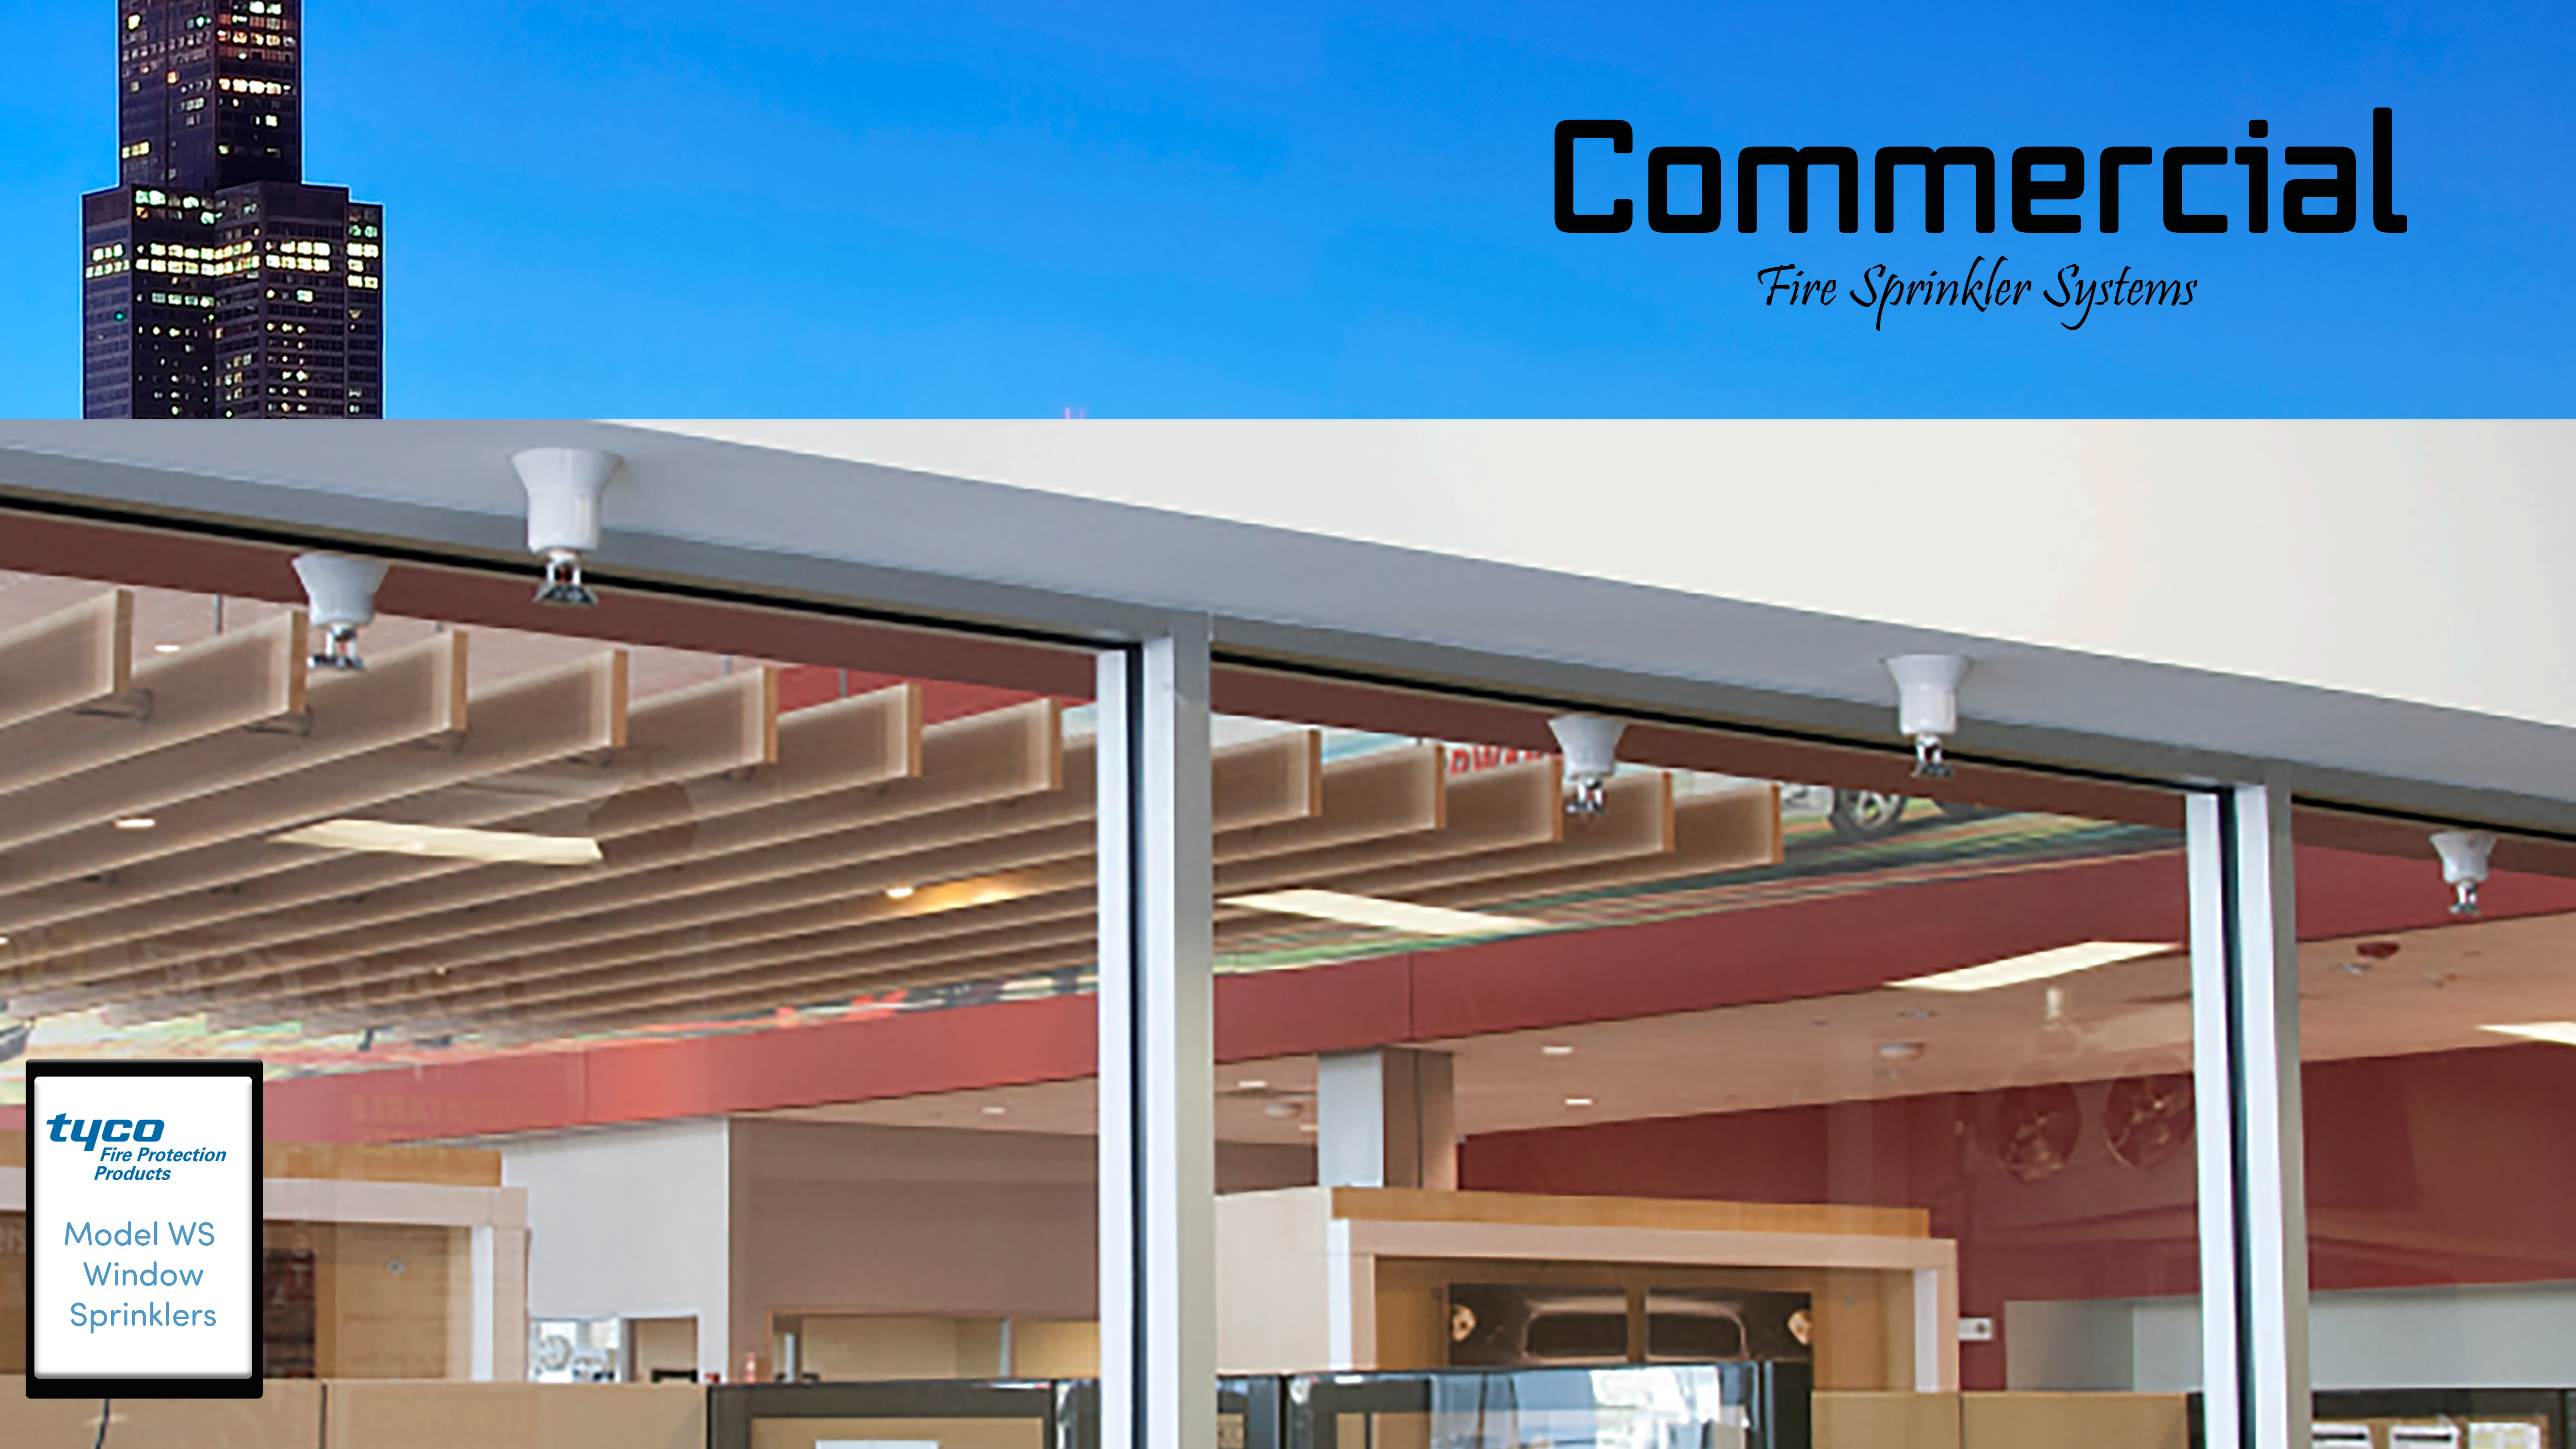 Commercial Fire Sprinkler Services in Los Angeles, California